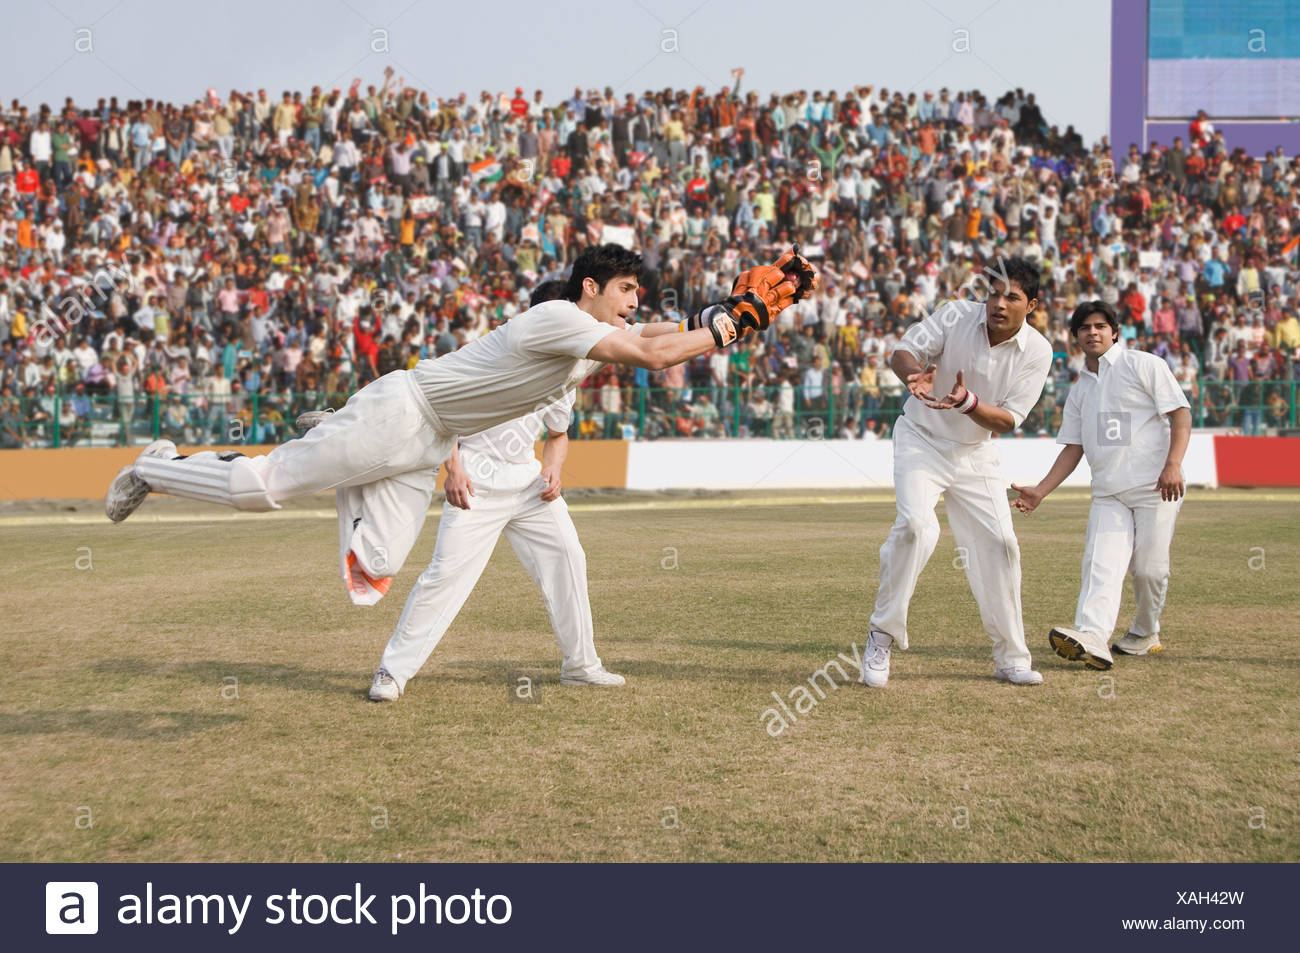 Cricket wicket keeper and fielders attempting for a catch - Stock Image